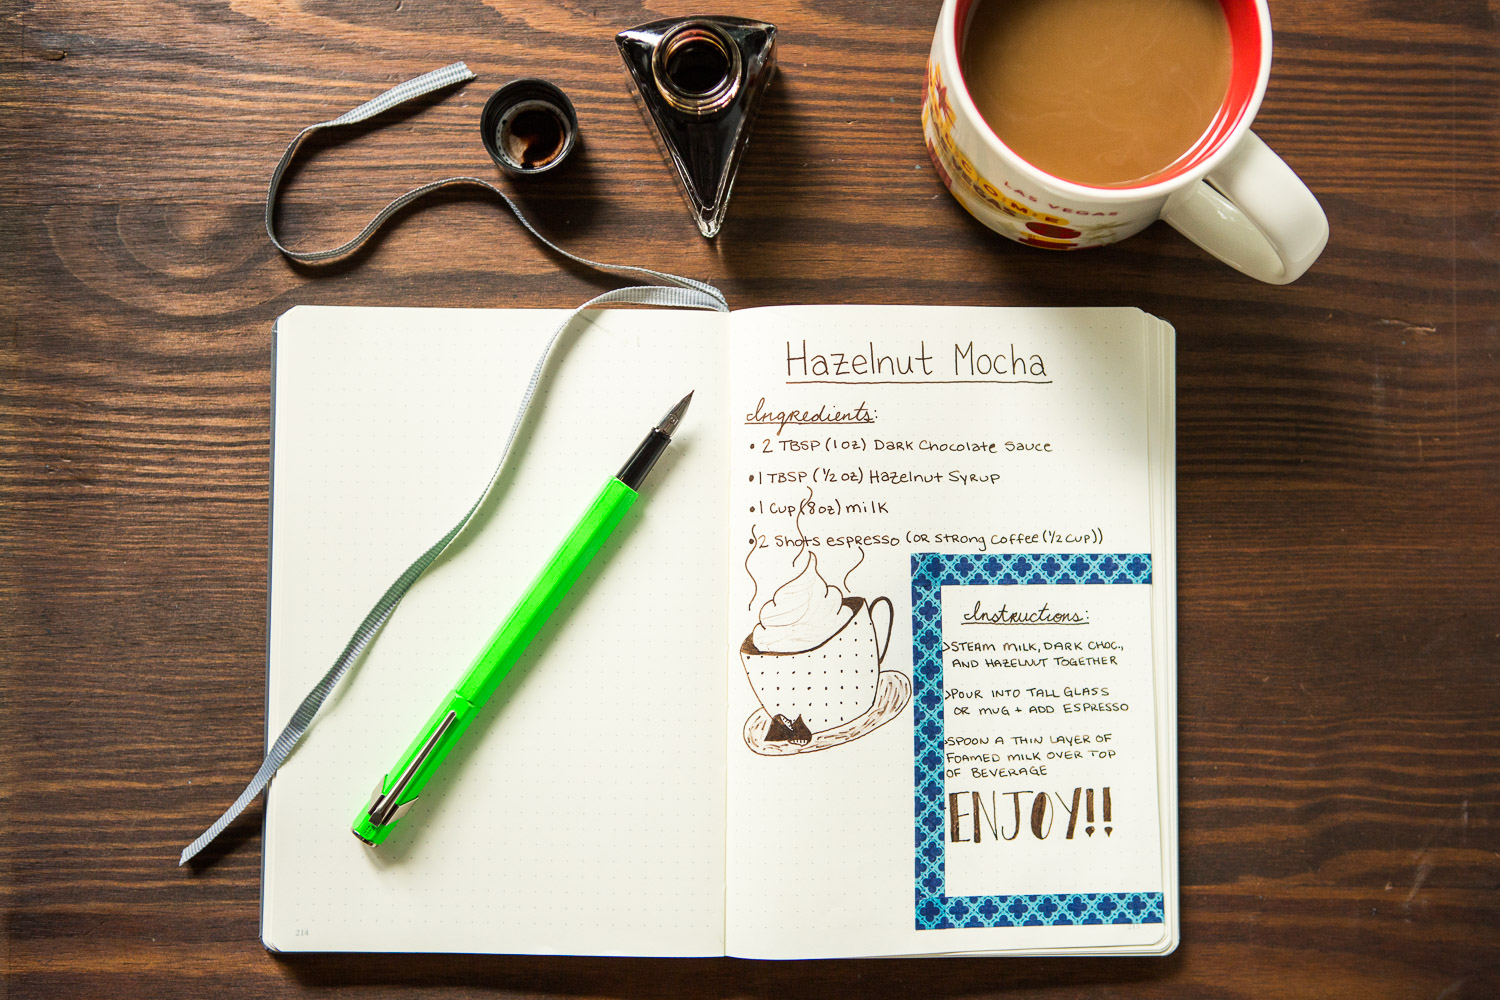 Hazelnut Mocha recipe drawn with a Caran d'Ache 849 Green Fluo fountain pen and Diamine Espresso ink.